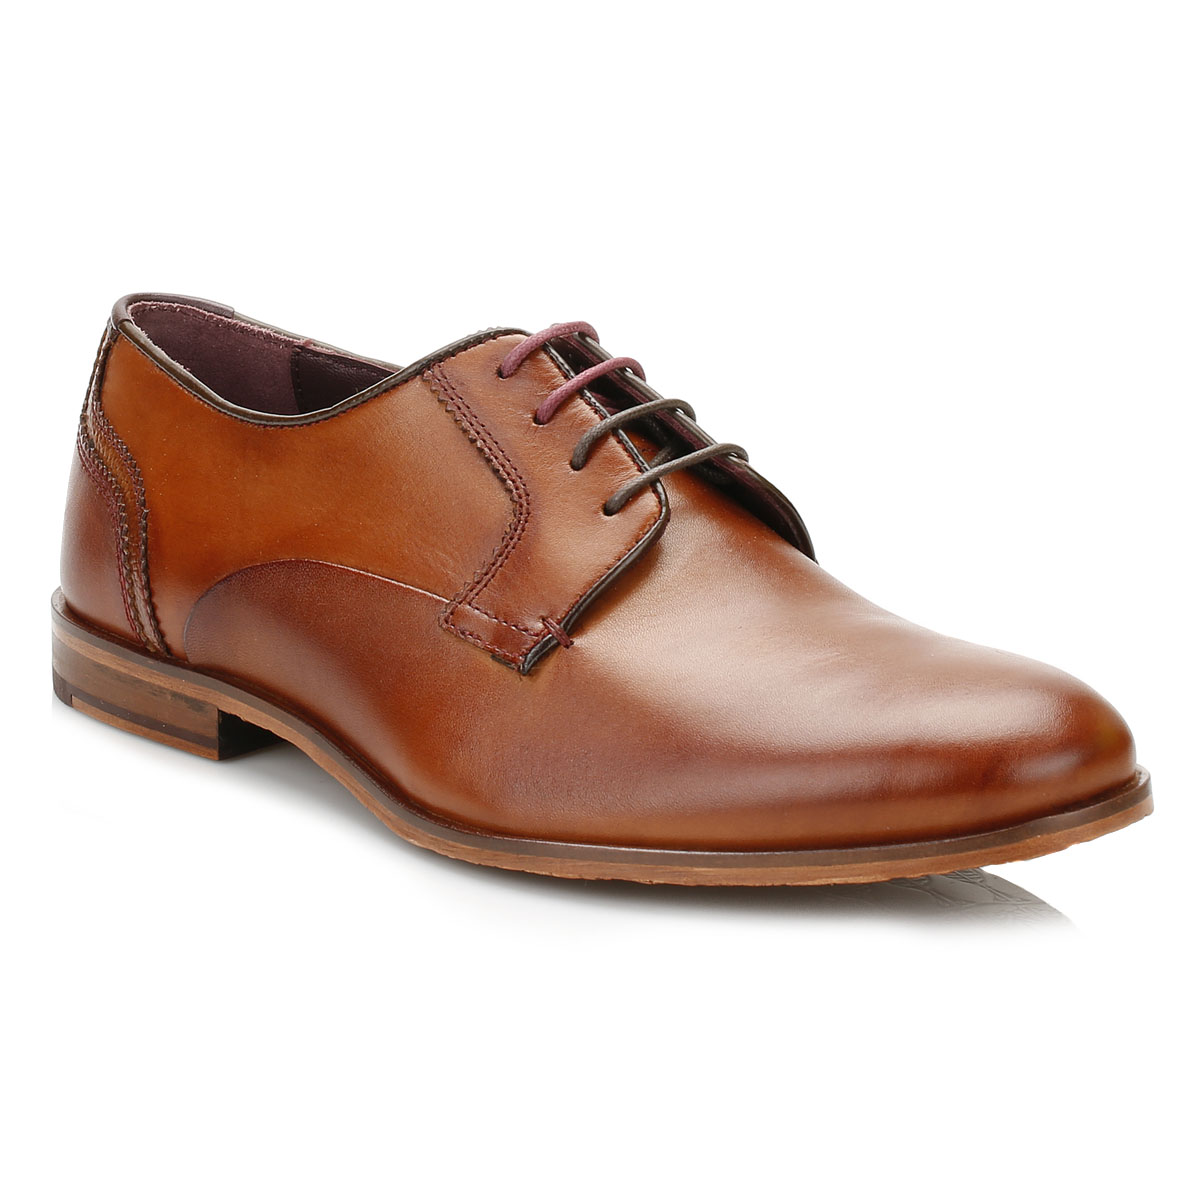 Shop men's brown casual & dress shoes from DICK'S Sporting Goods today. If you find a lower price on men's brown casual & dress shoes somewhere else, we'll match it with our Best Price Guarantee! Check out customer reviews on men's brown casual & dress shoes and save big on a variety of products. Plus, ScoreCard members earn points on every purchase.